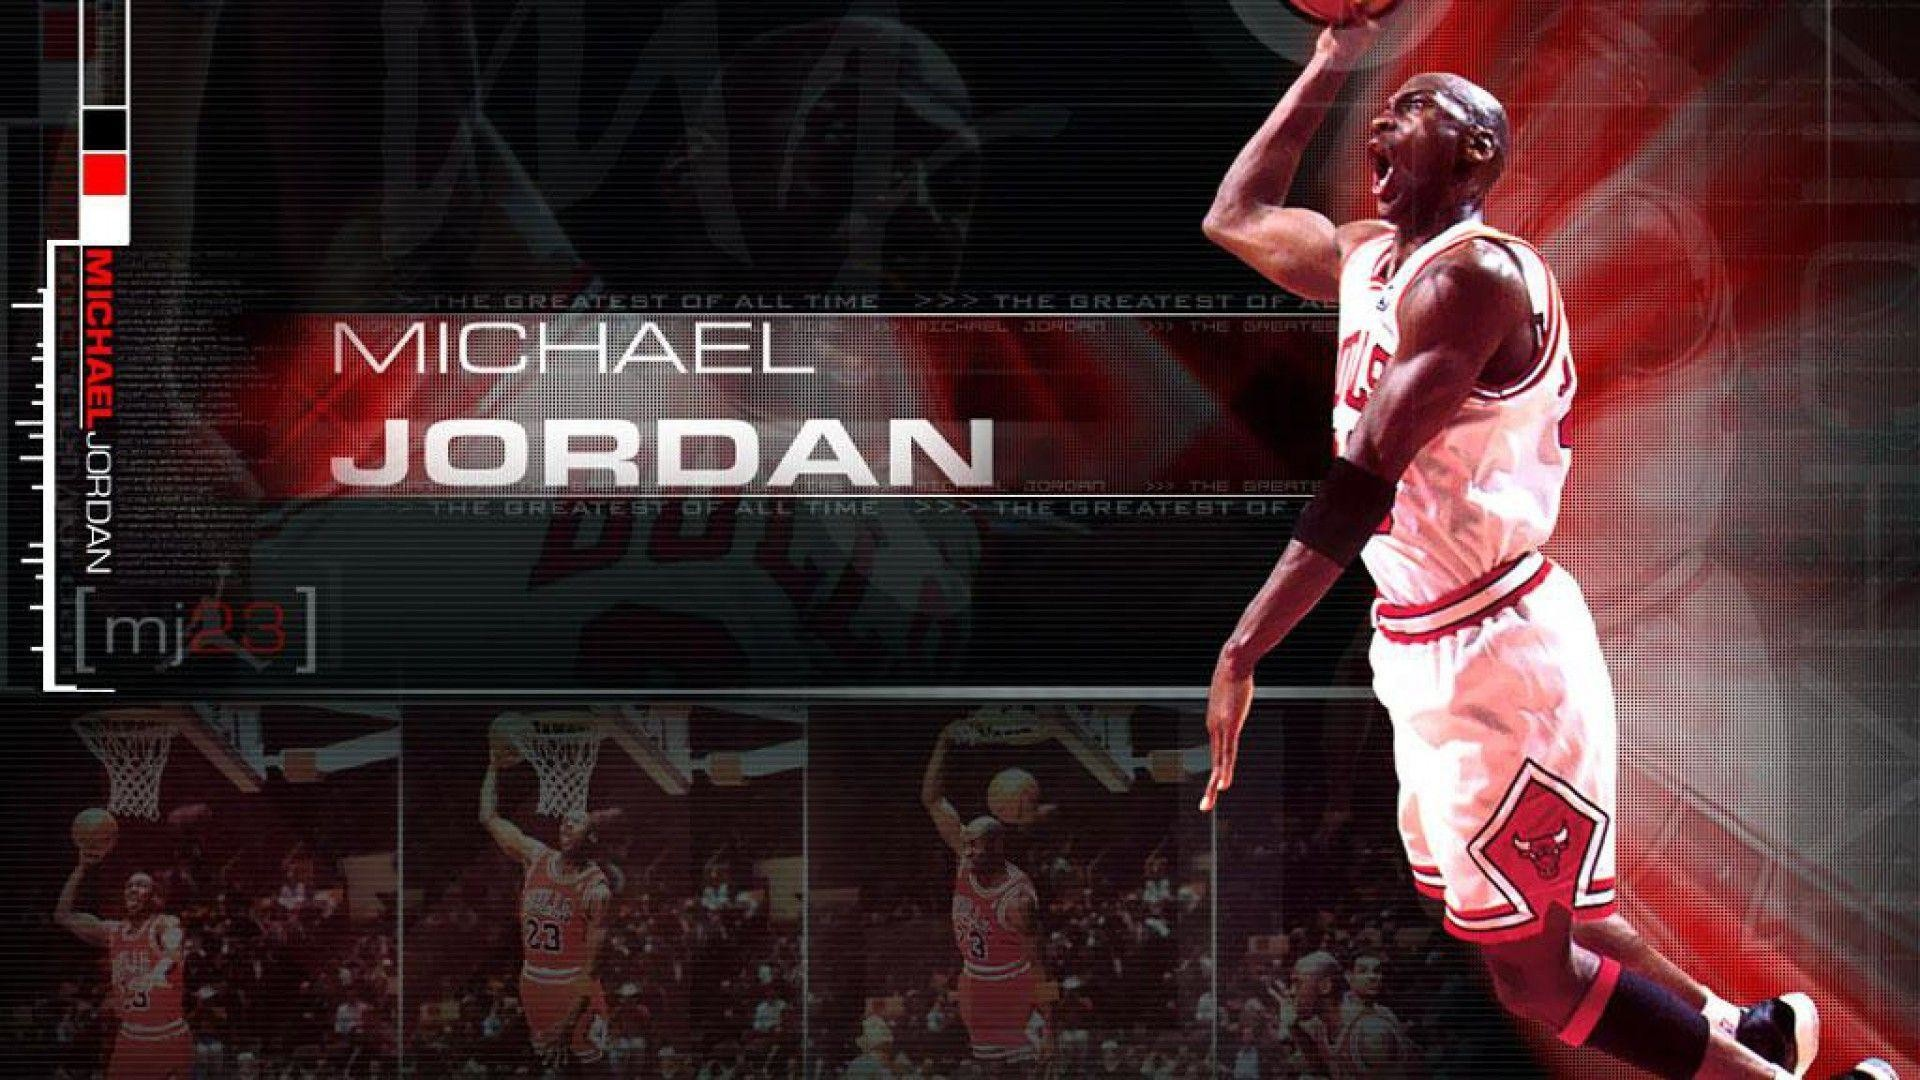 1920x1080 Michael Jordan Wallpapers Hd Hd Cool 7 HD Wallpapers | Hdimges.